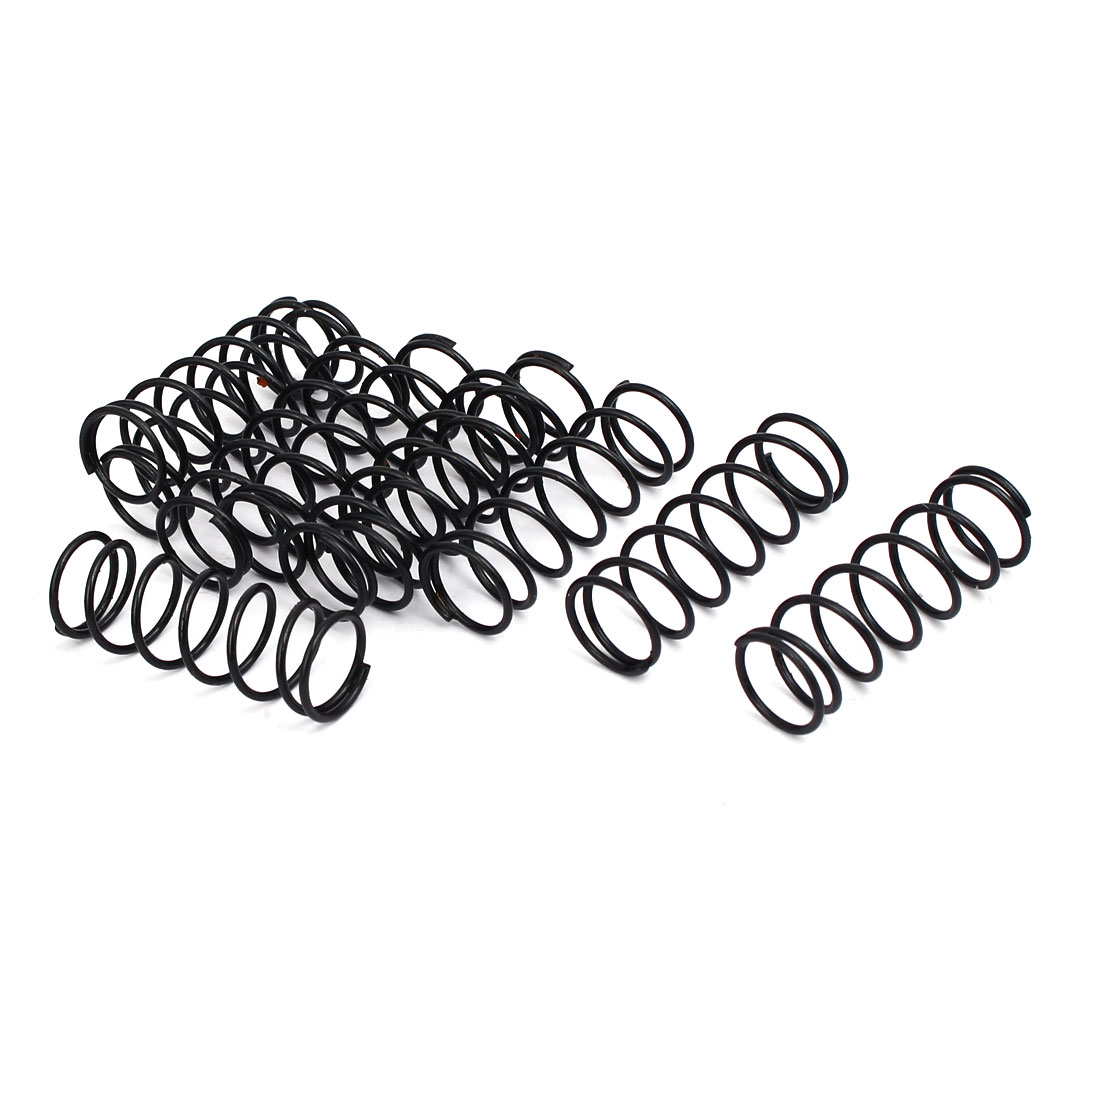 Compression Springs 1 2mm Wire Dia 14mm Outer Diameter 40mm Long Compression Springs Black 10pcs